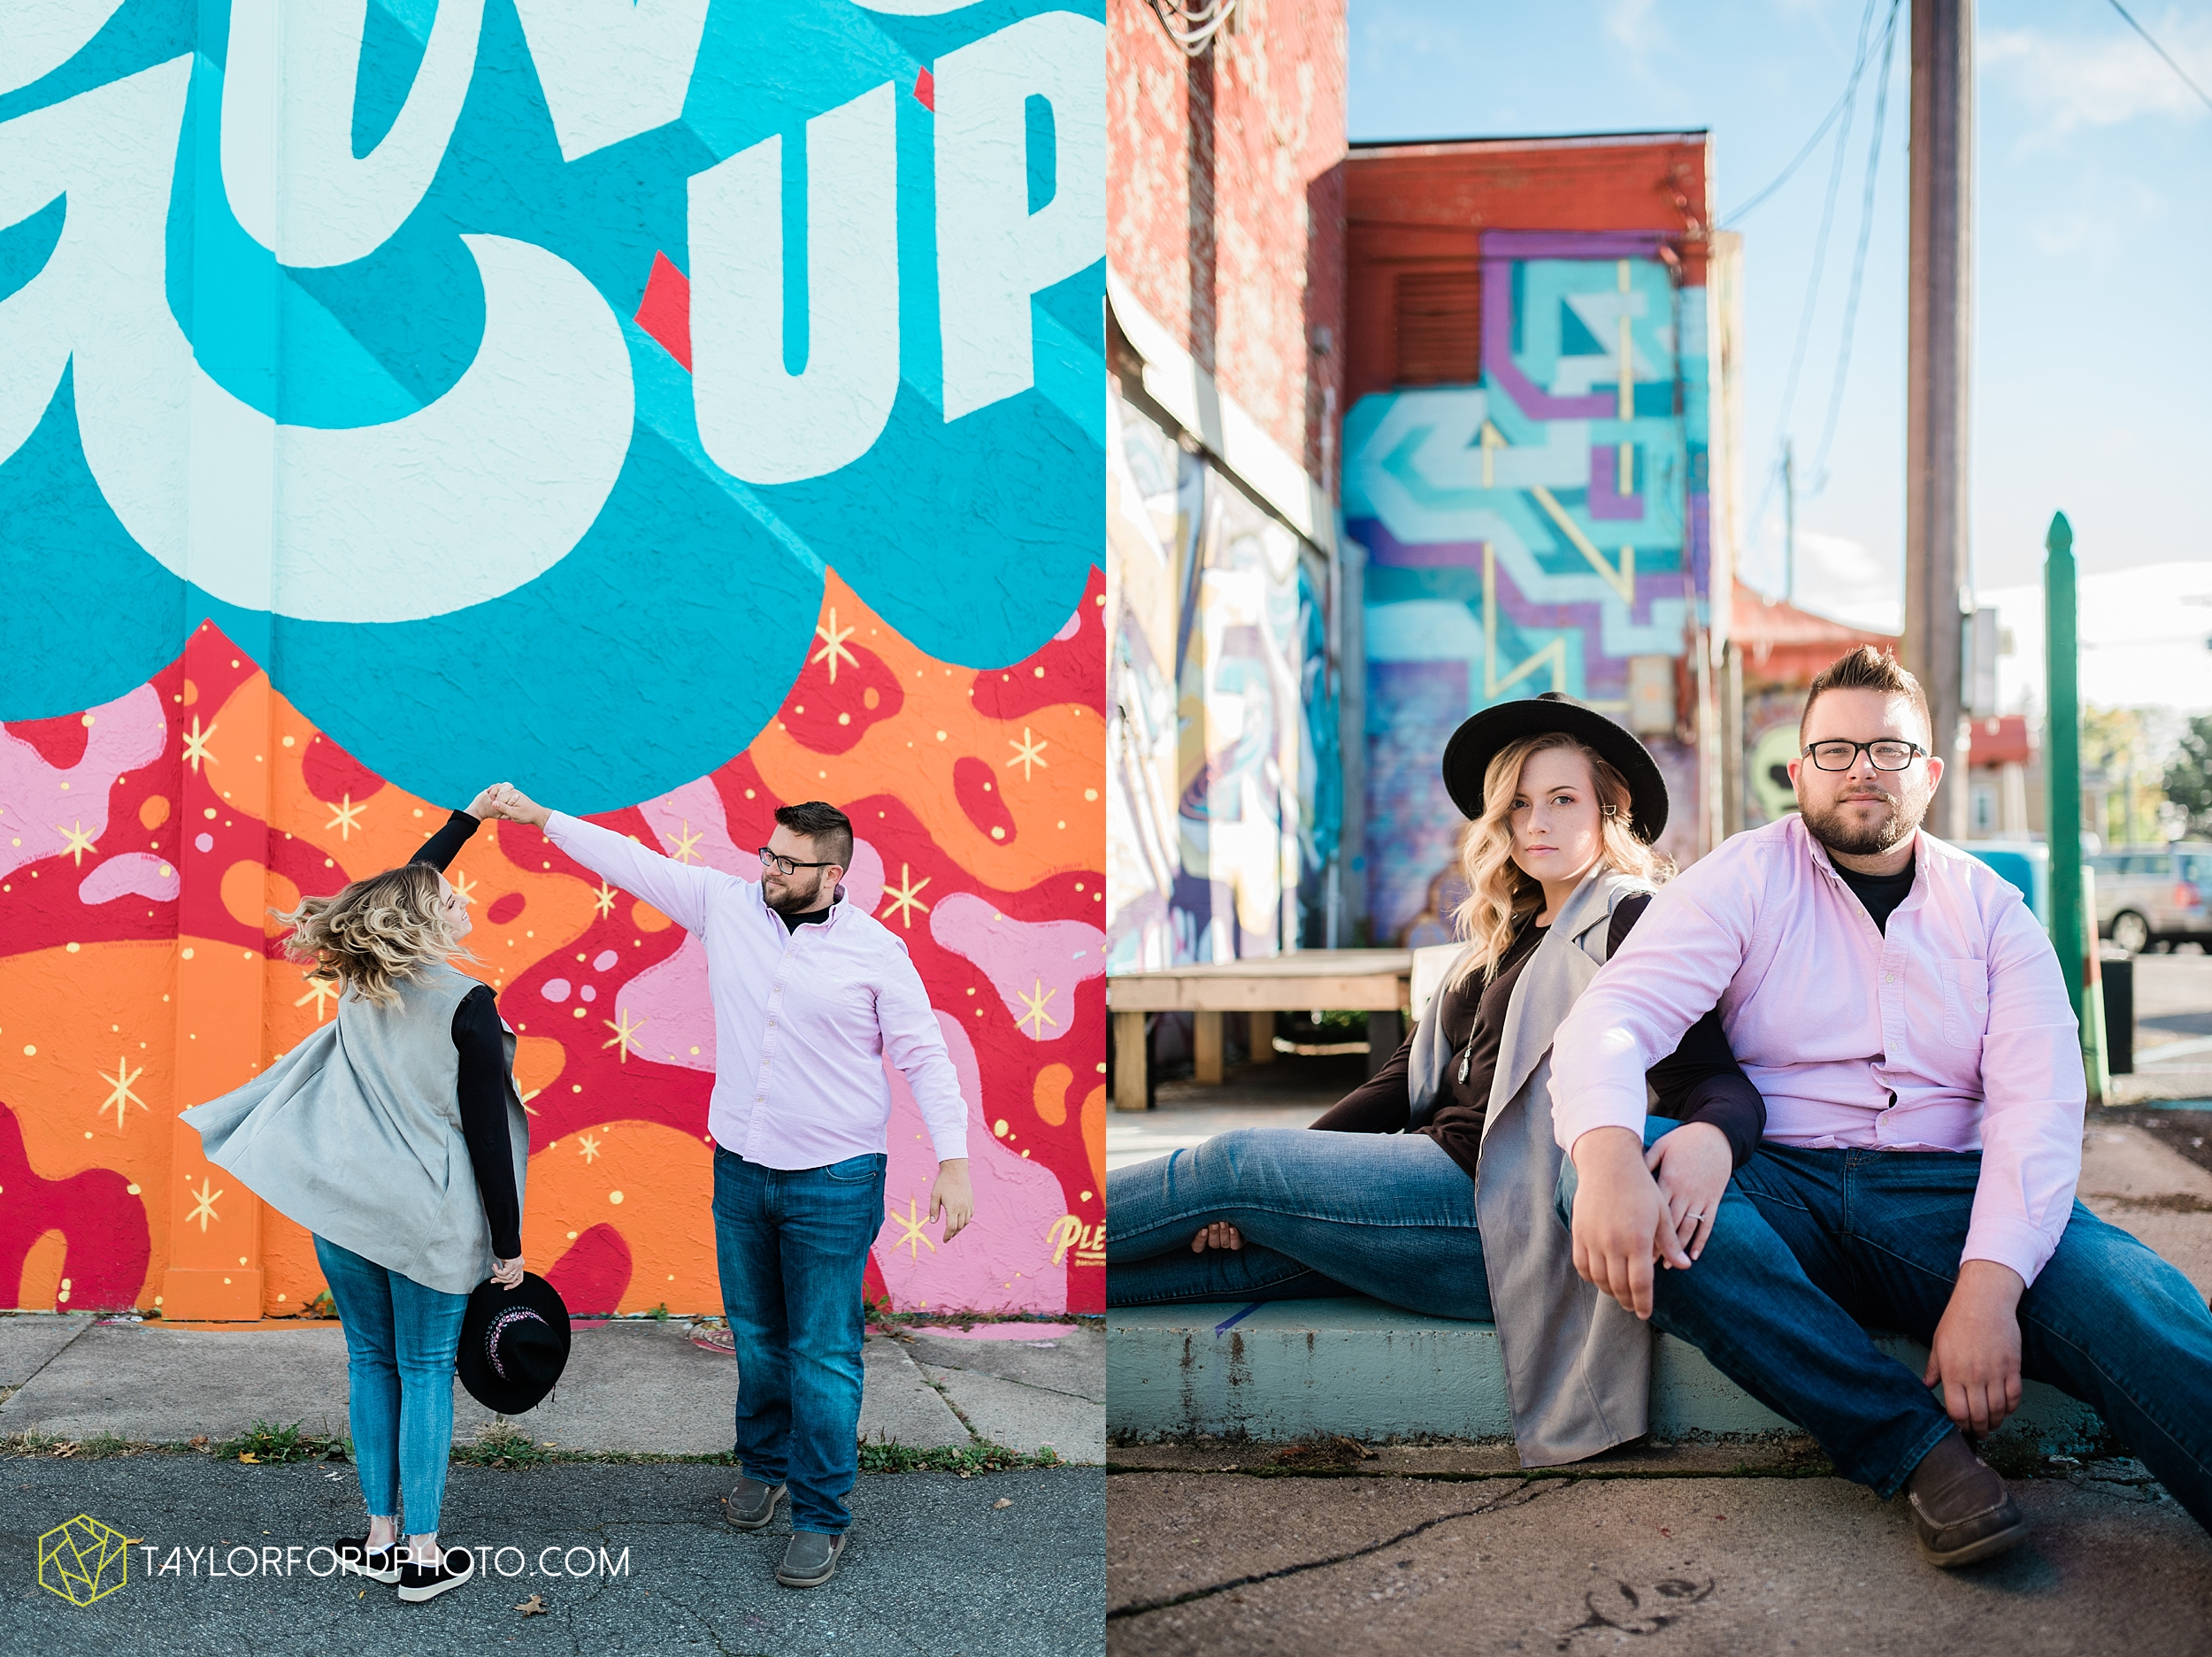 downtown-fort-wayne-engagement-foster-park-bravas-wunderkamer-fox-island-quarry-photographer-taylor-ford-photography_0963.jpg